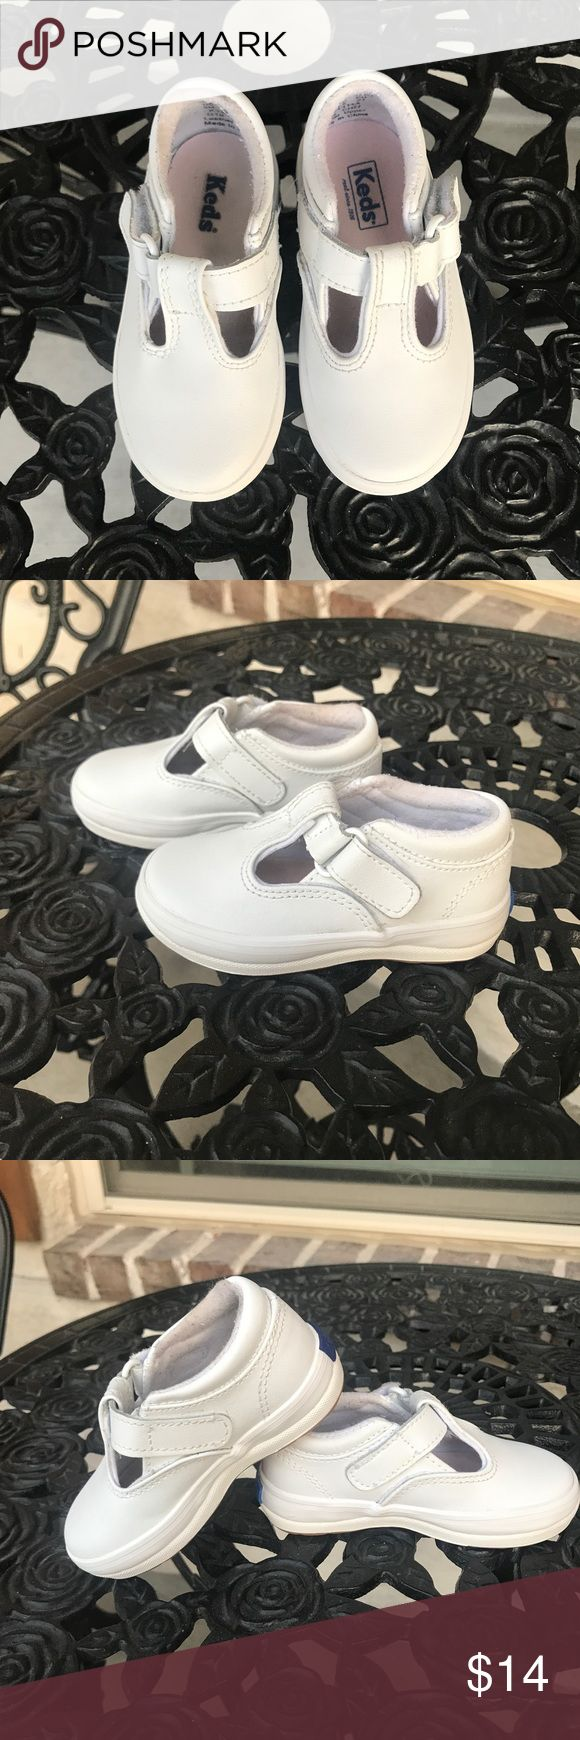 Keds toddler shoes Sz 5m Keds white toddler shoes. Sz 5m. Only worn a few times. In good condition. Bundle and save :) Keds Shoes Sneakers